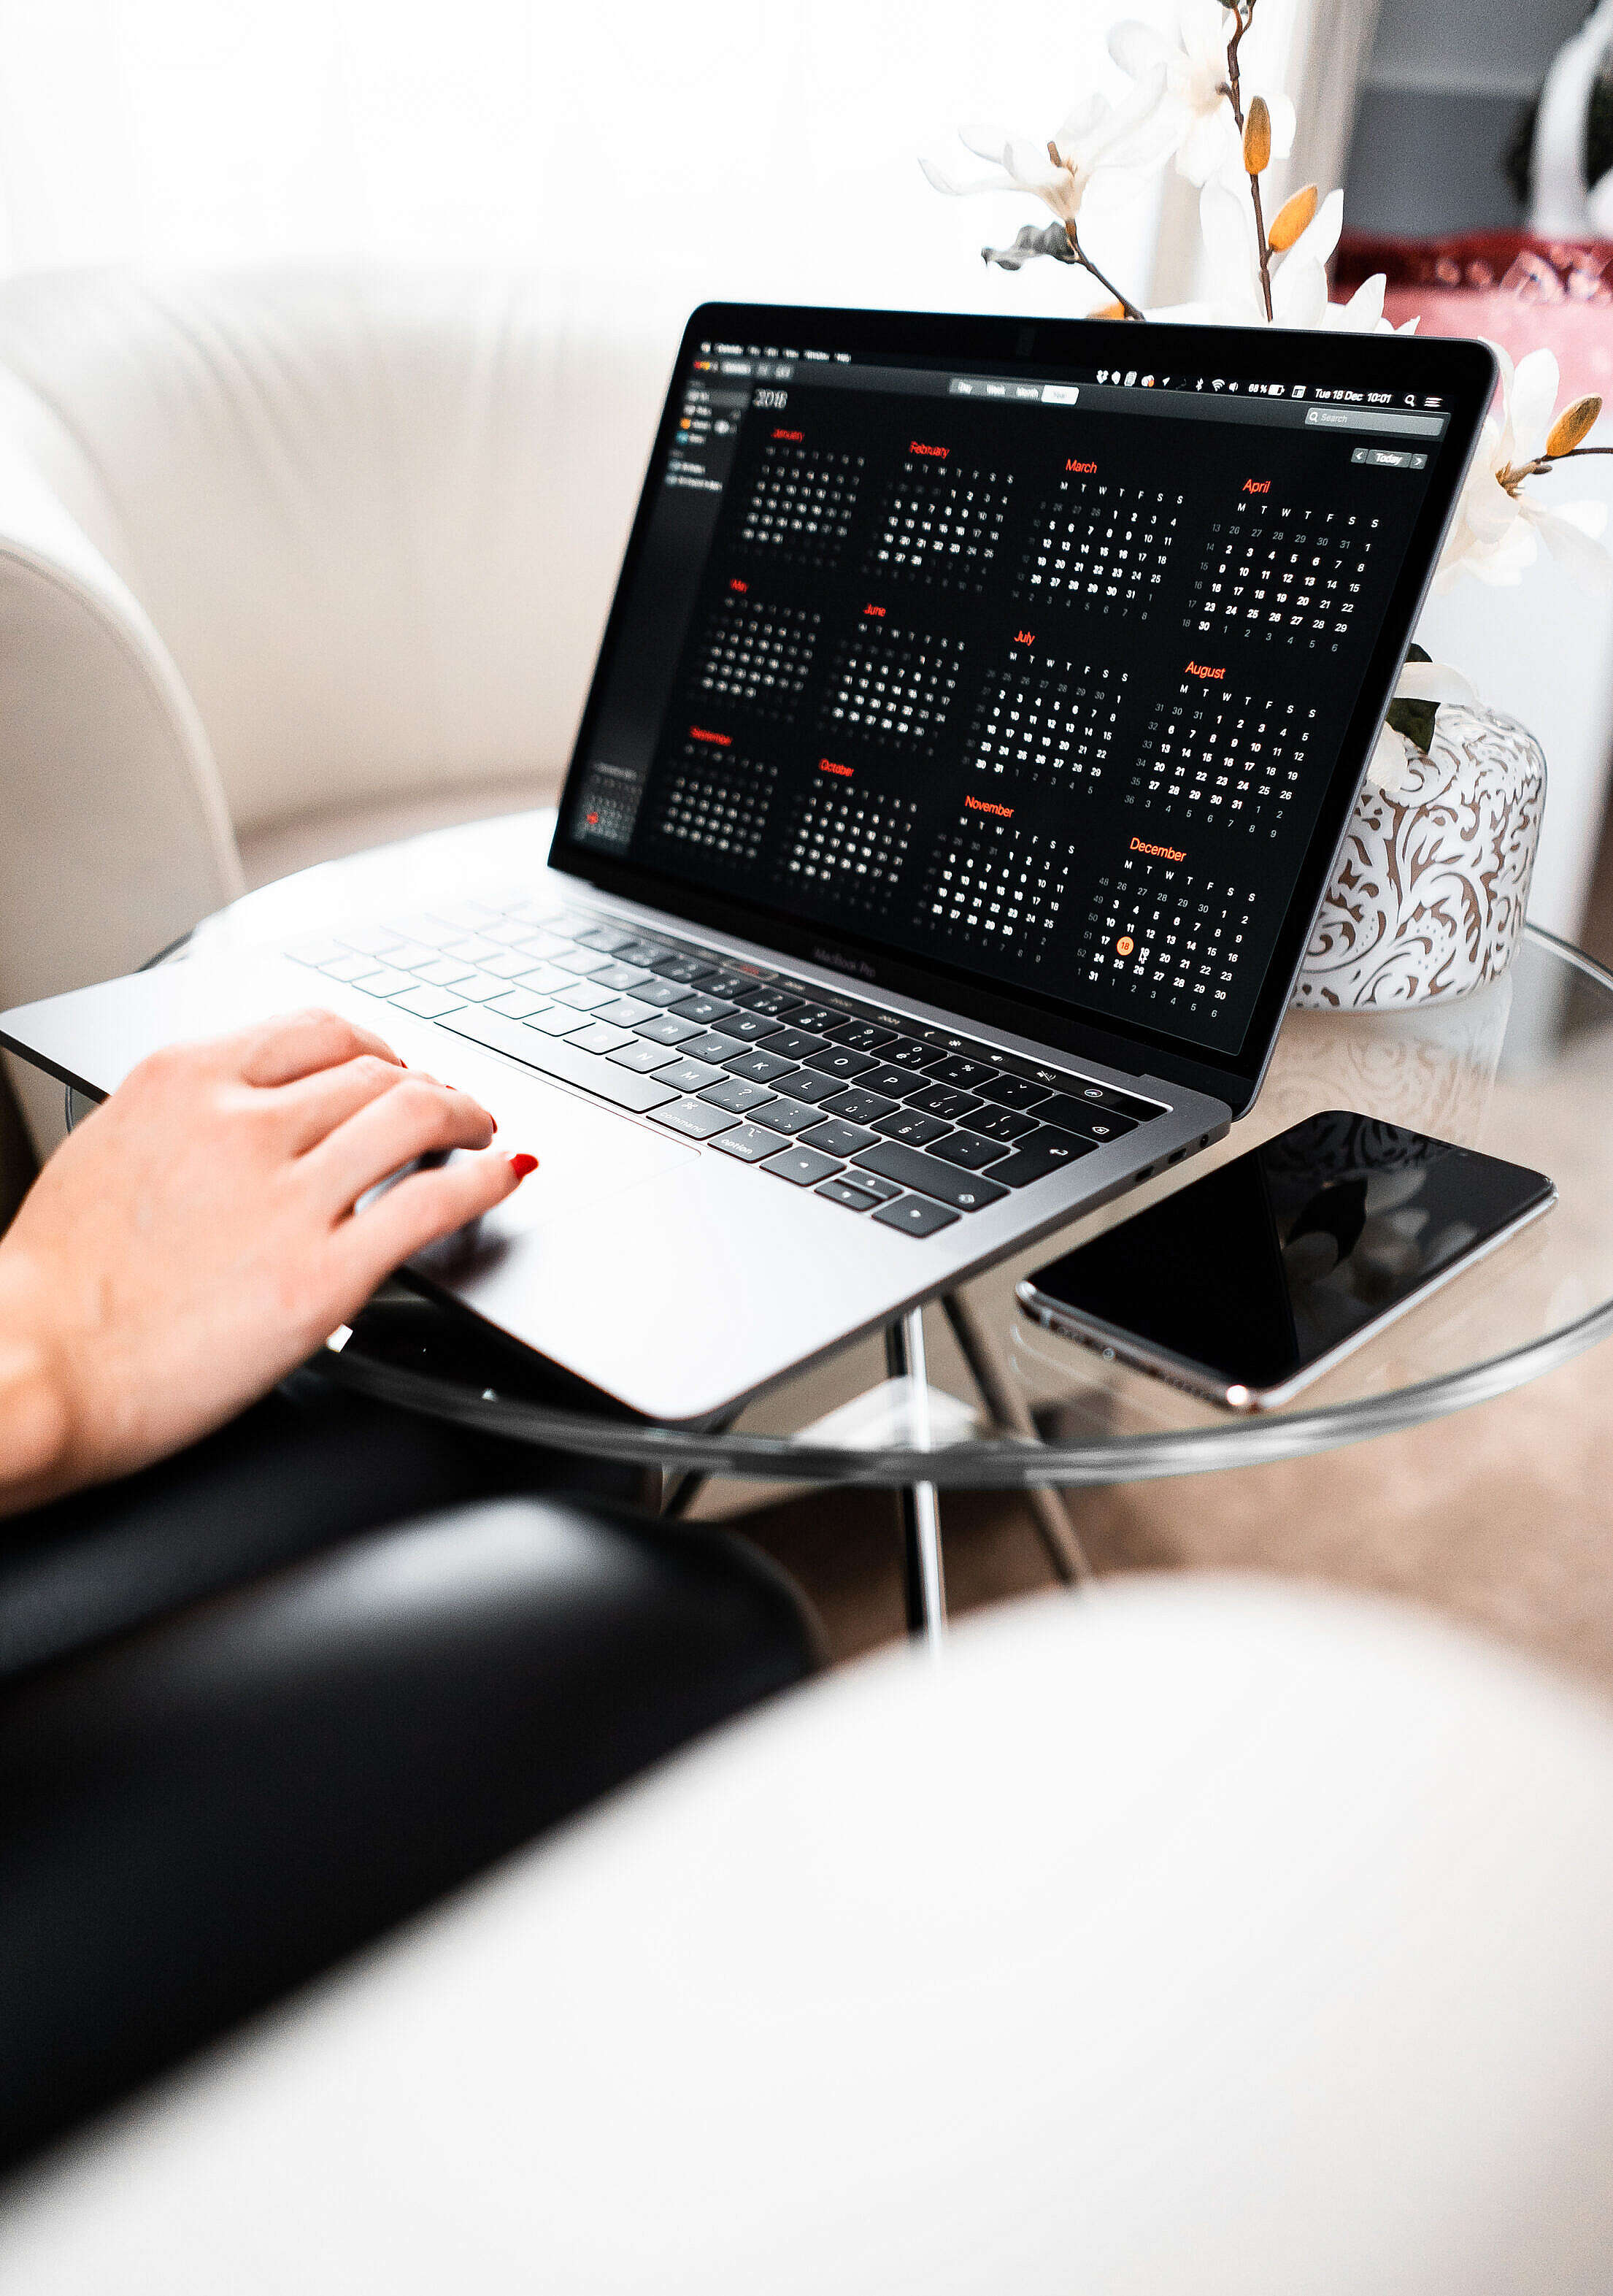 Time Management on Modern Laptop Free Stock Photo